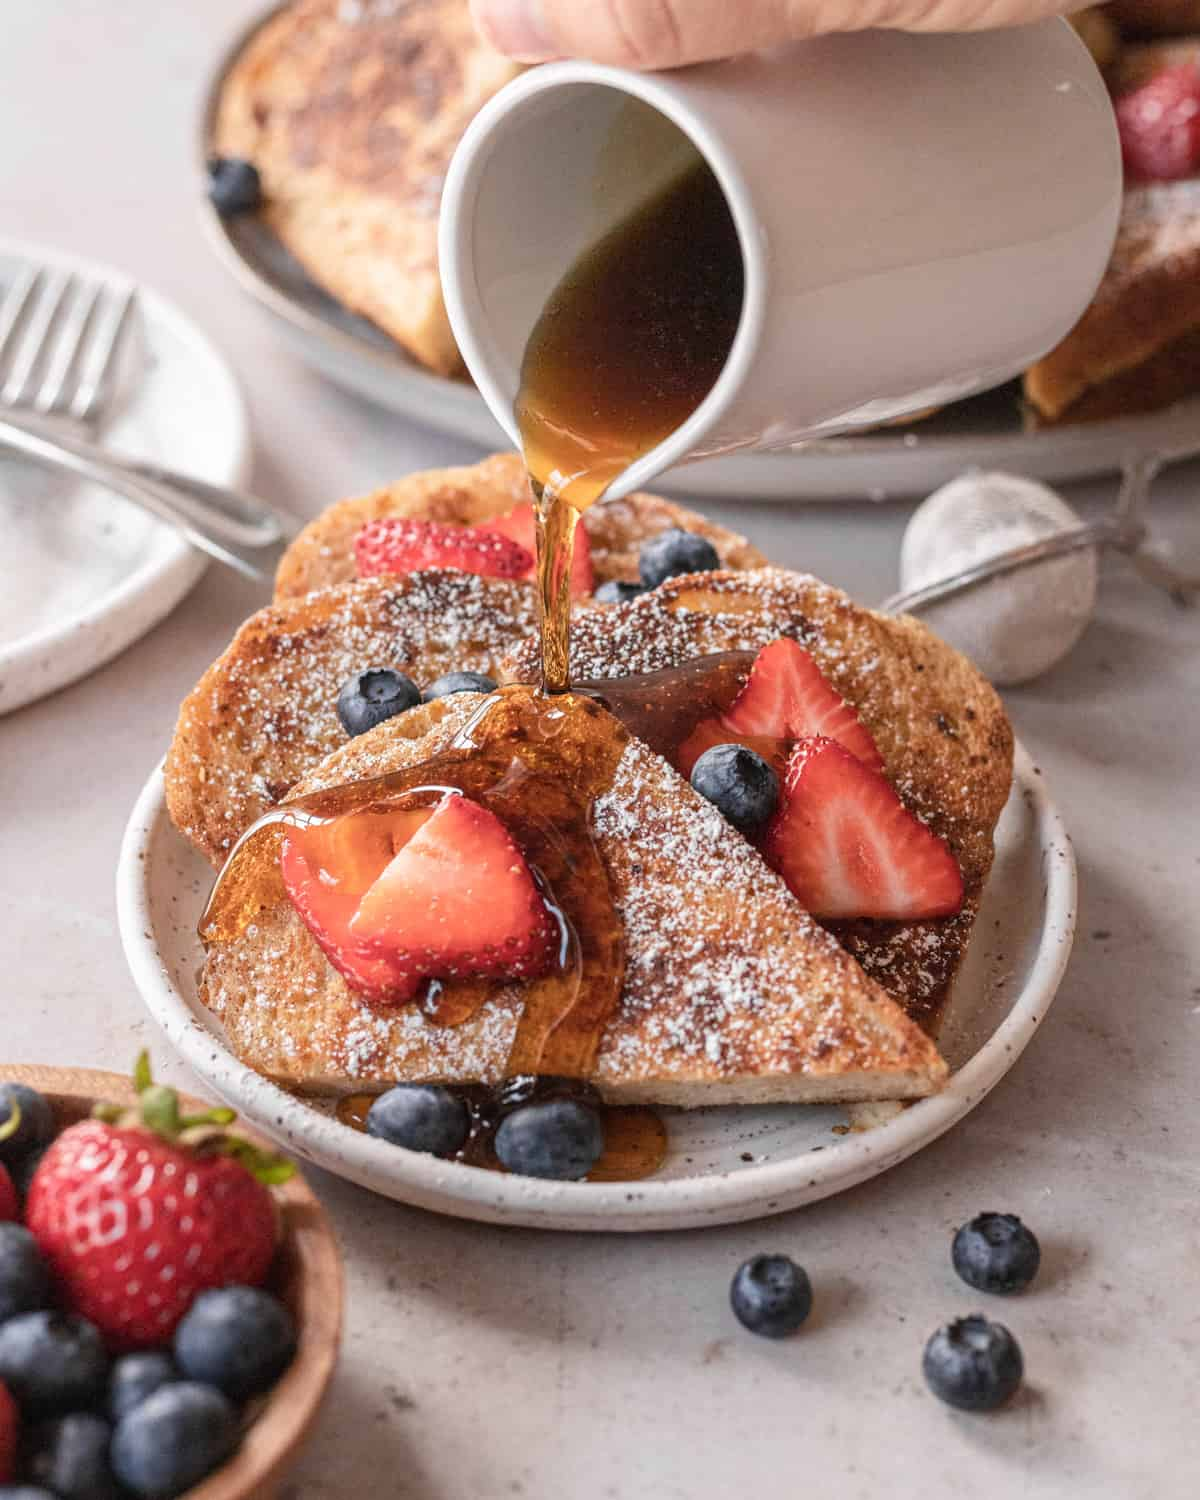 sliced french toast on a plate with maple syrup being poured over top surround by berries.